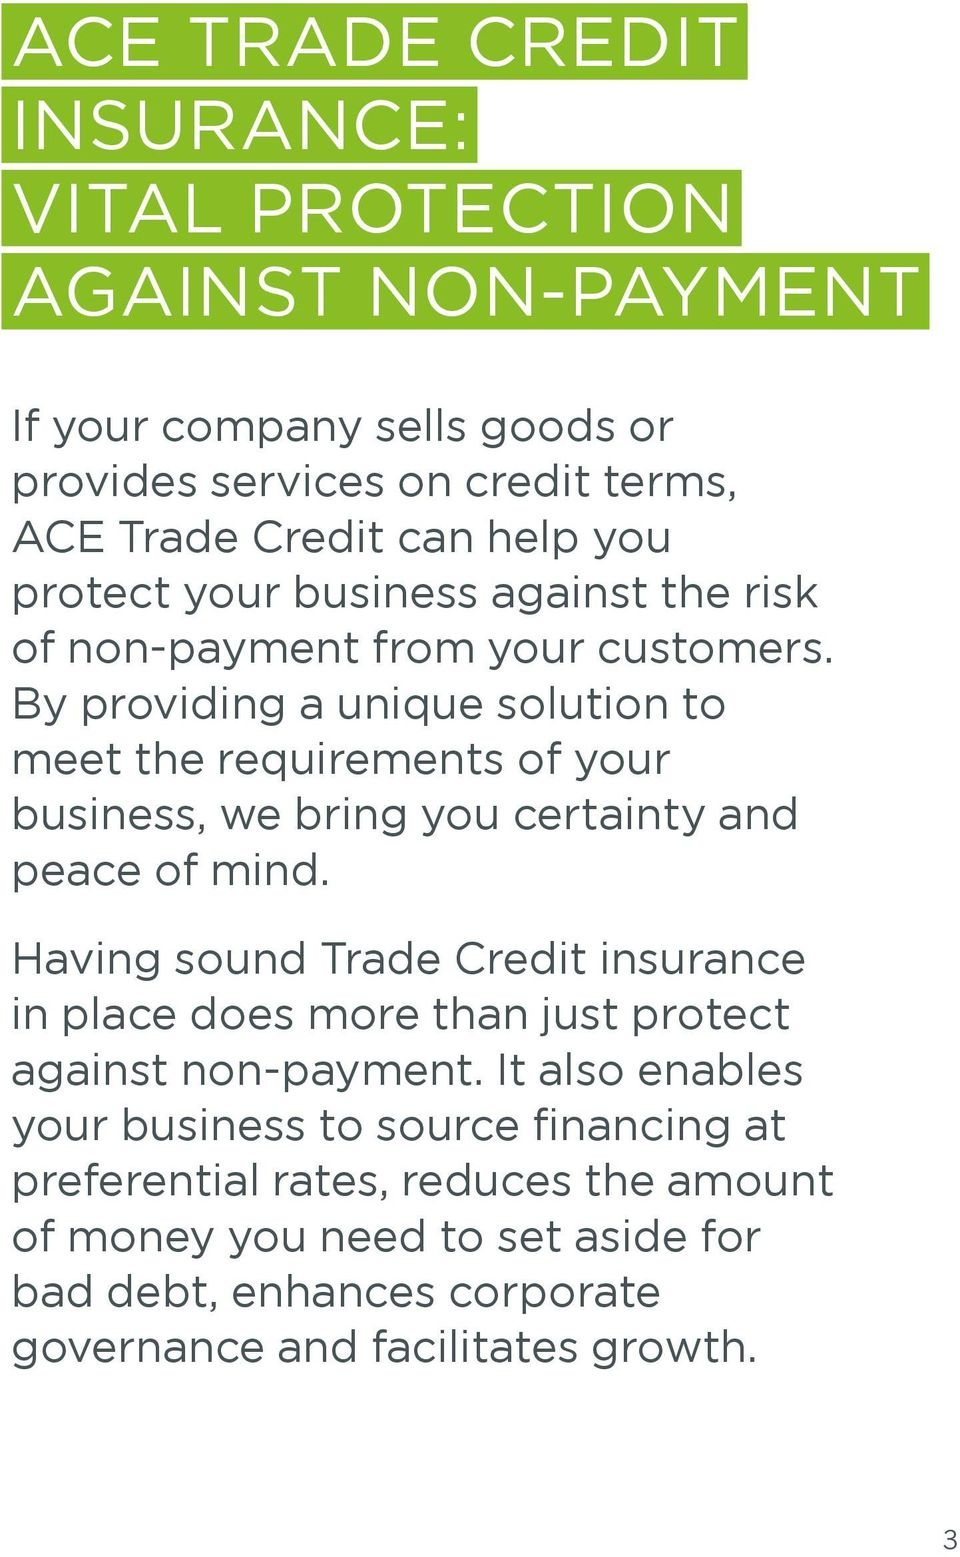 By providing a unique solution to meet the requirements of your business, we bring you certainty and peace of mind.